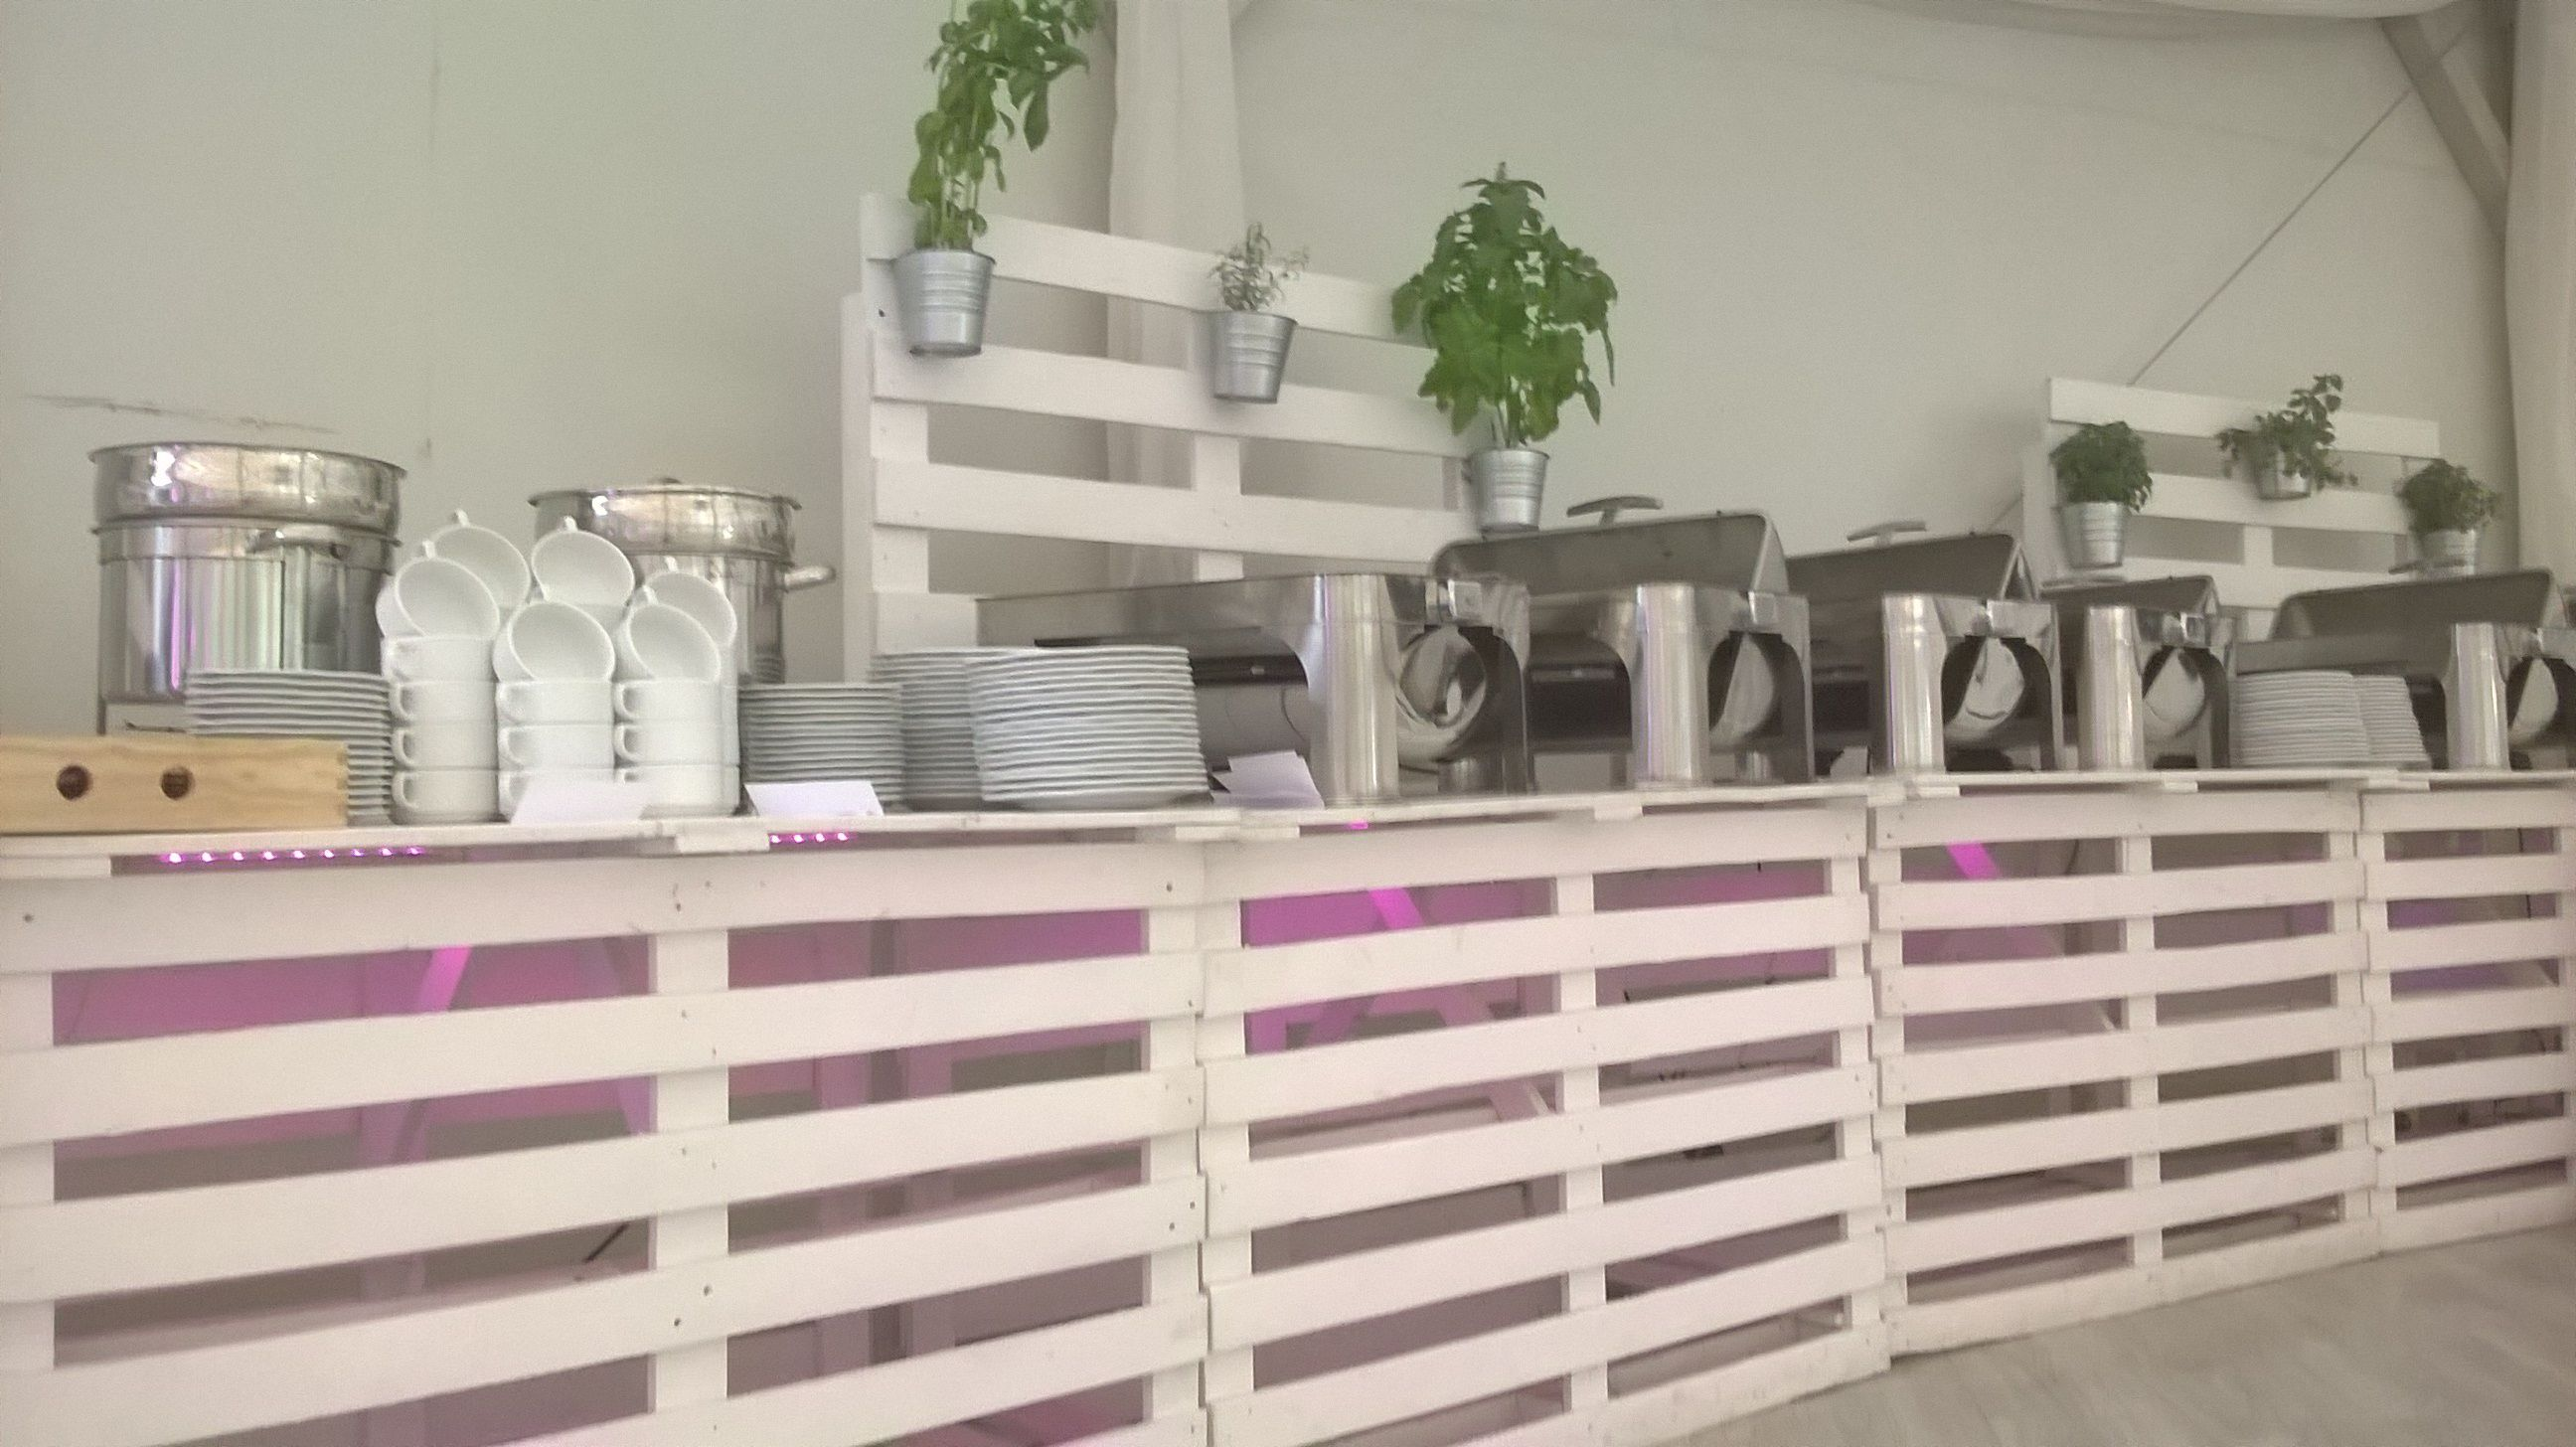 Recycled wedding installation for environmentally friendly couples